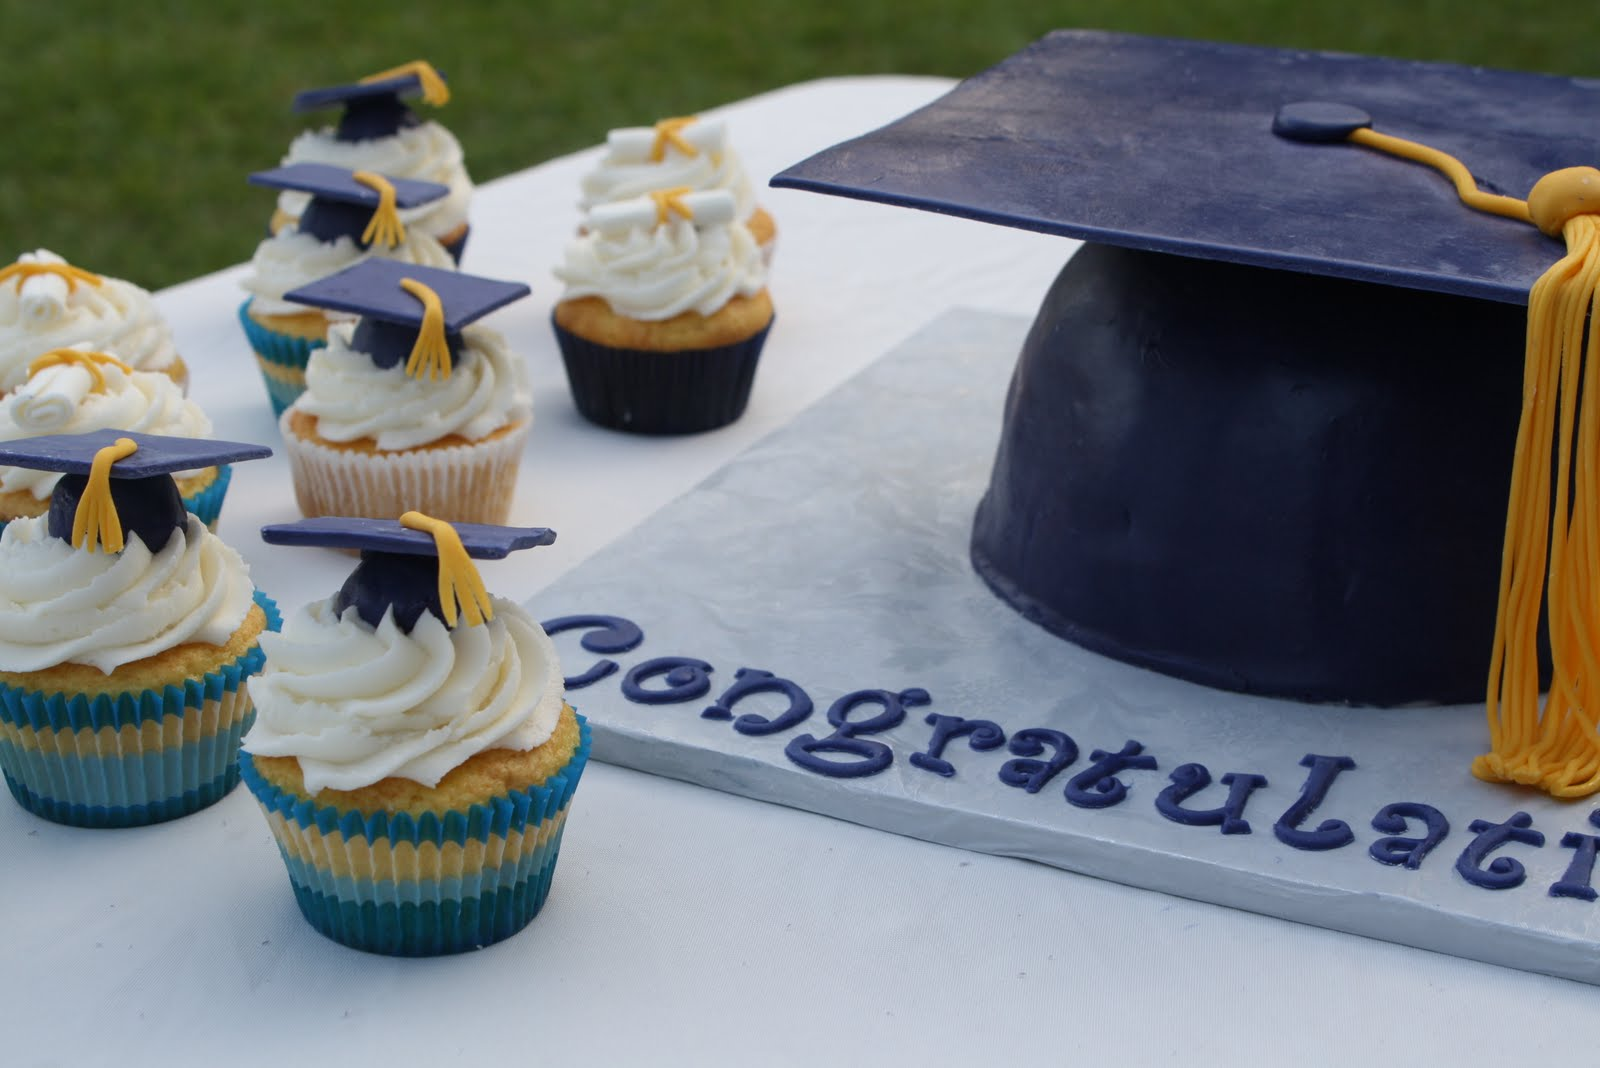 Graduation Cake Recipes Pictures : Graduation Cap Cake and Cupcakes - Rose Bakes